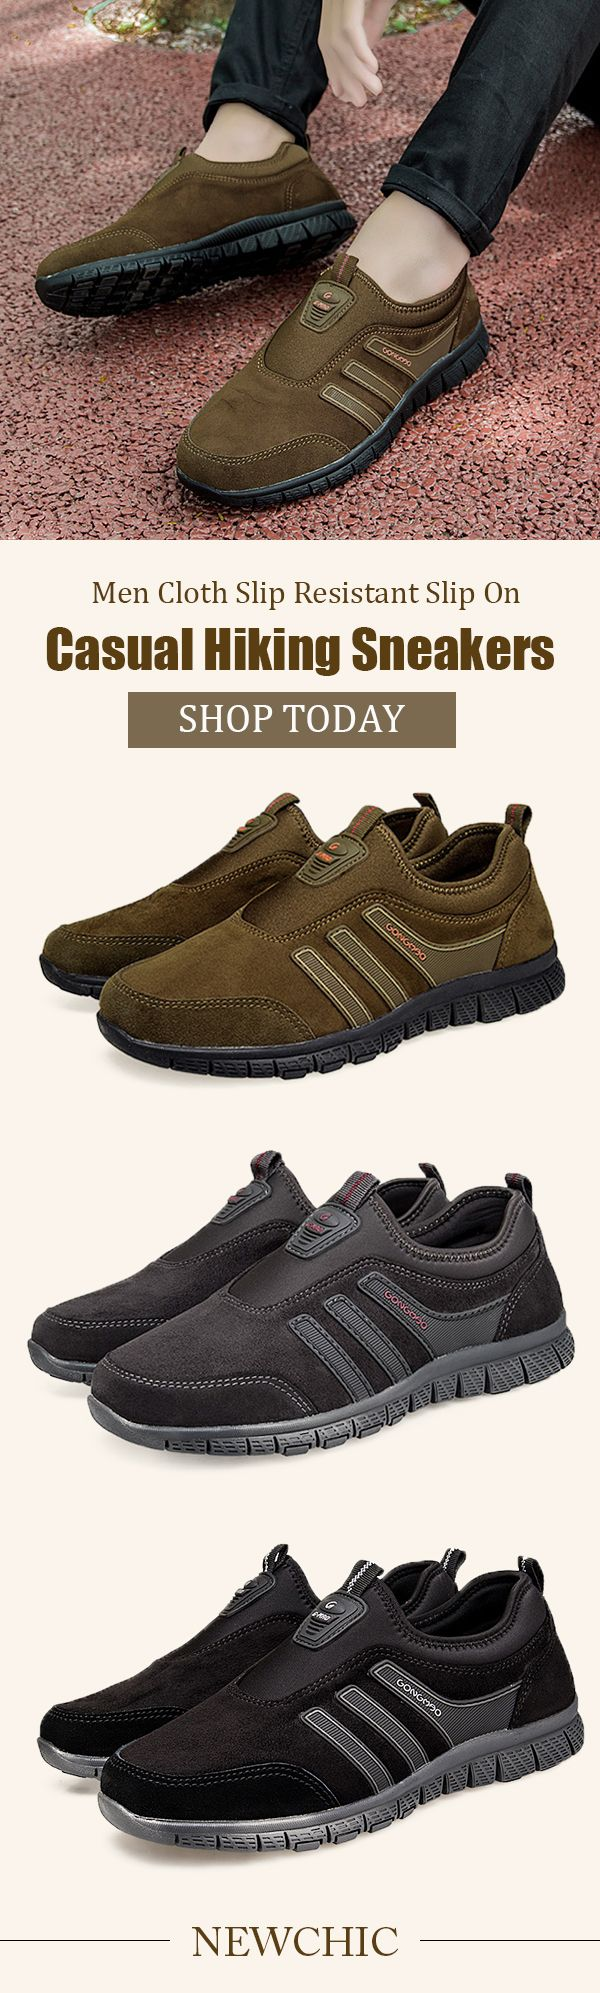 Men Cloth Slip Resistant Slip On Casual Hiking Sneakers